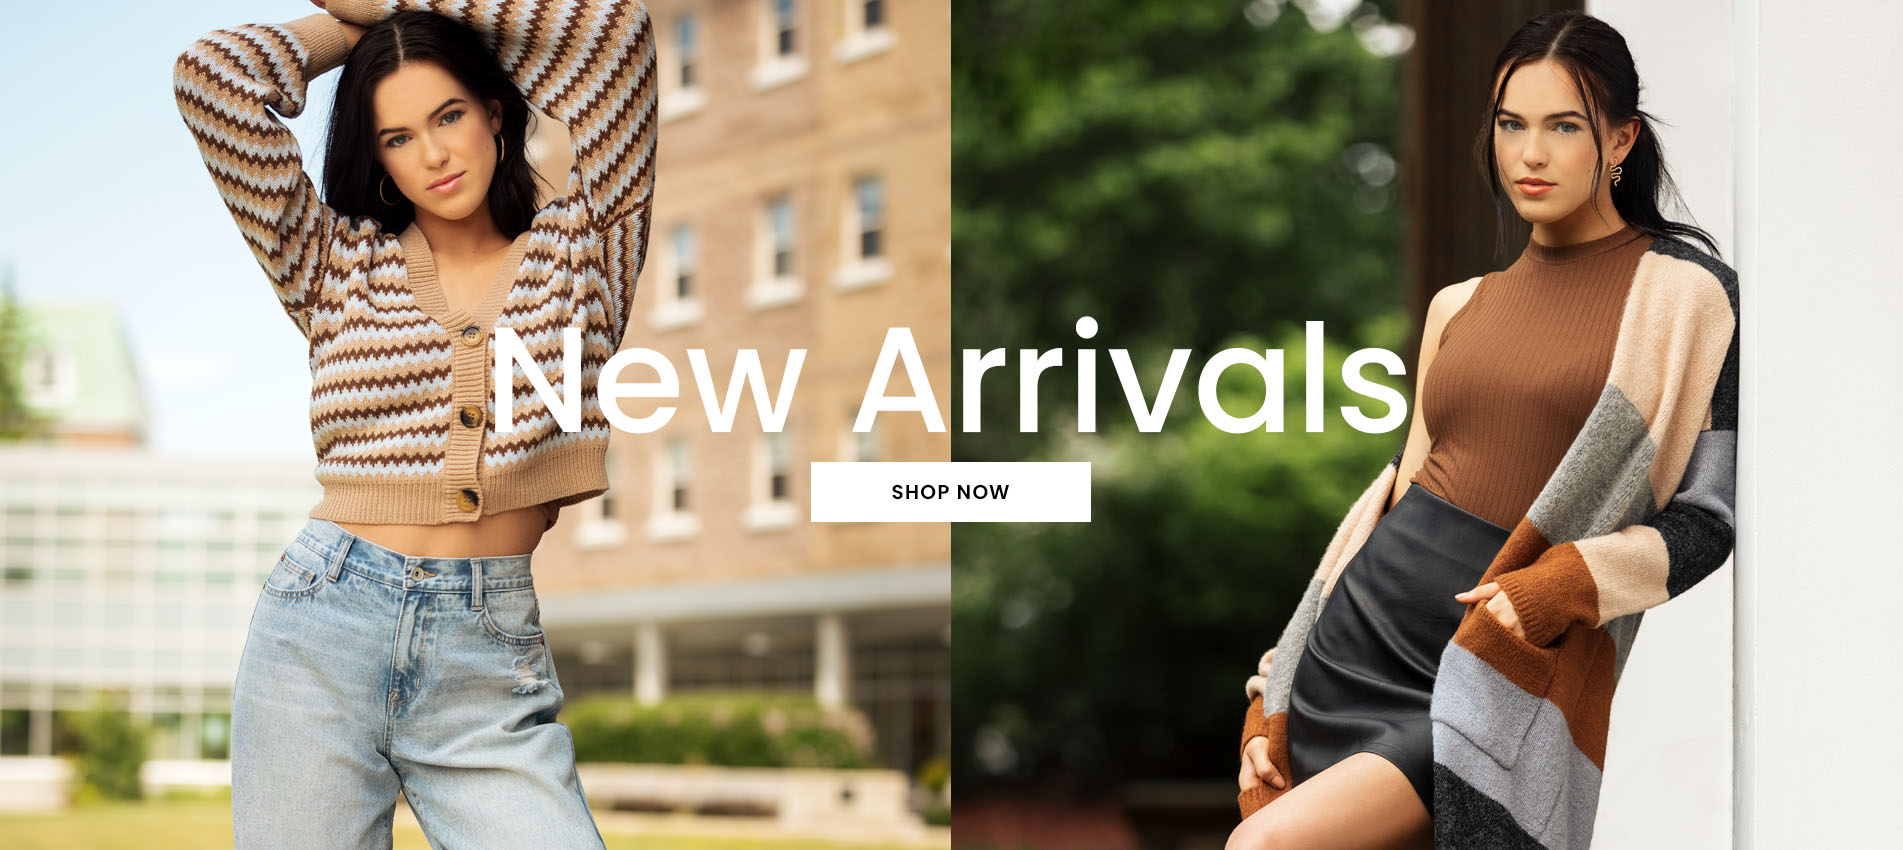 New Arrivals: our latest Styles just landed. Shop now